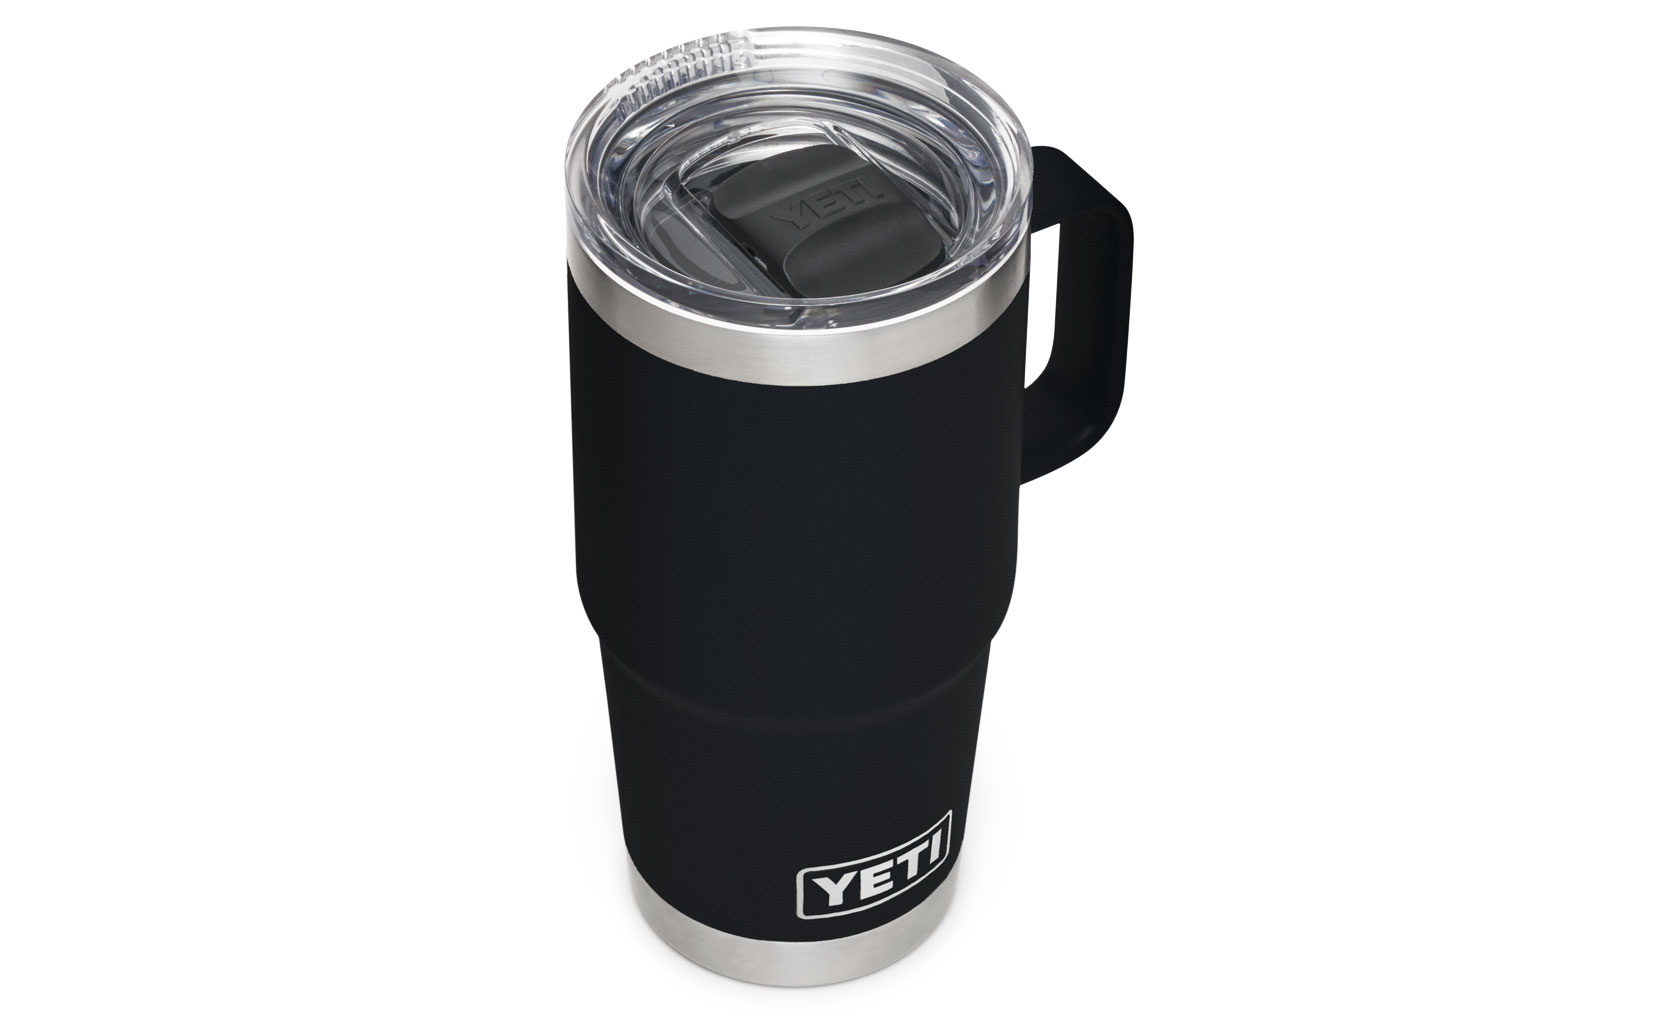 Yeti Rambler 20 Oz Travel Mug With Stronghold Lid Black